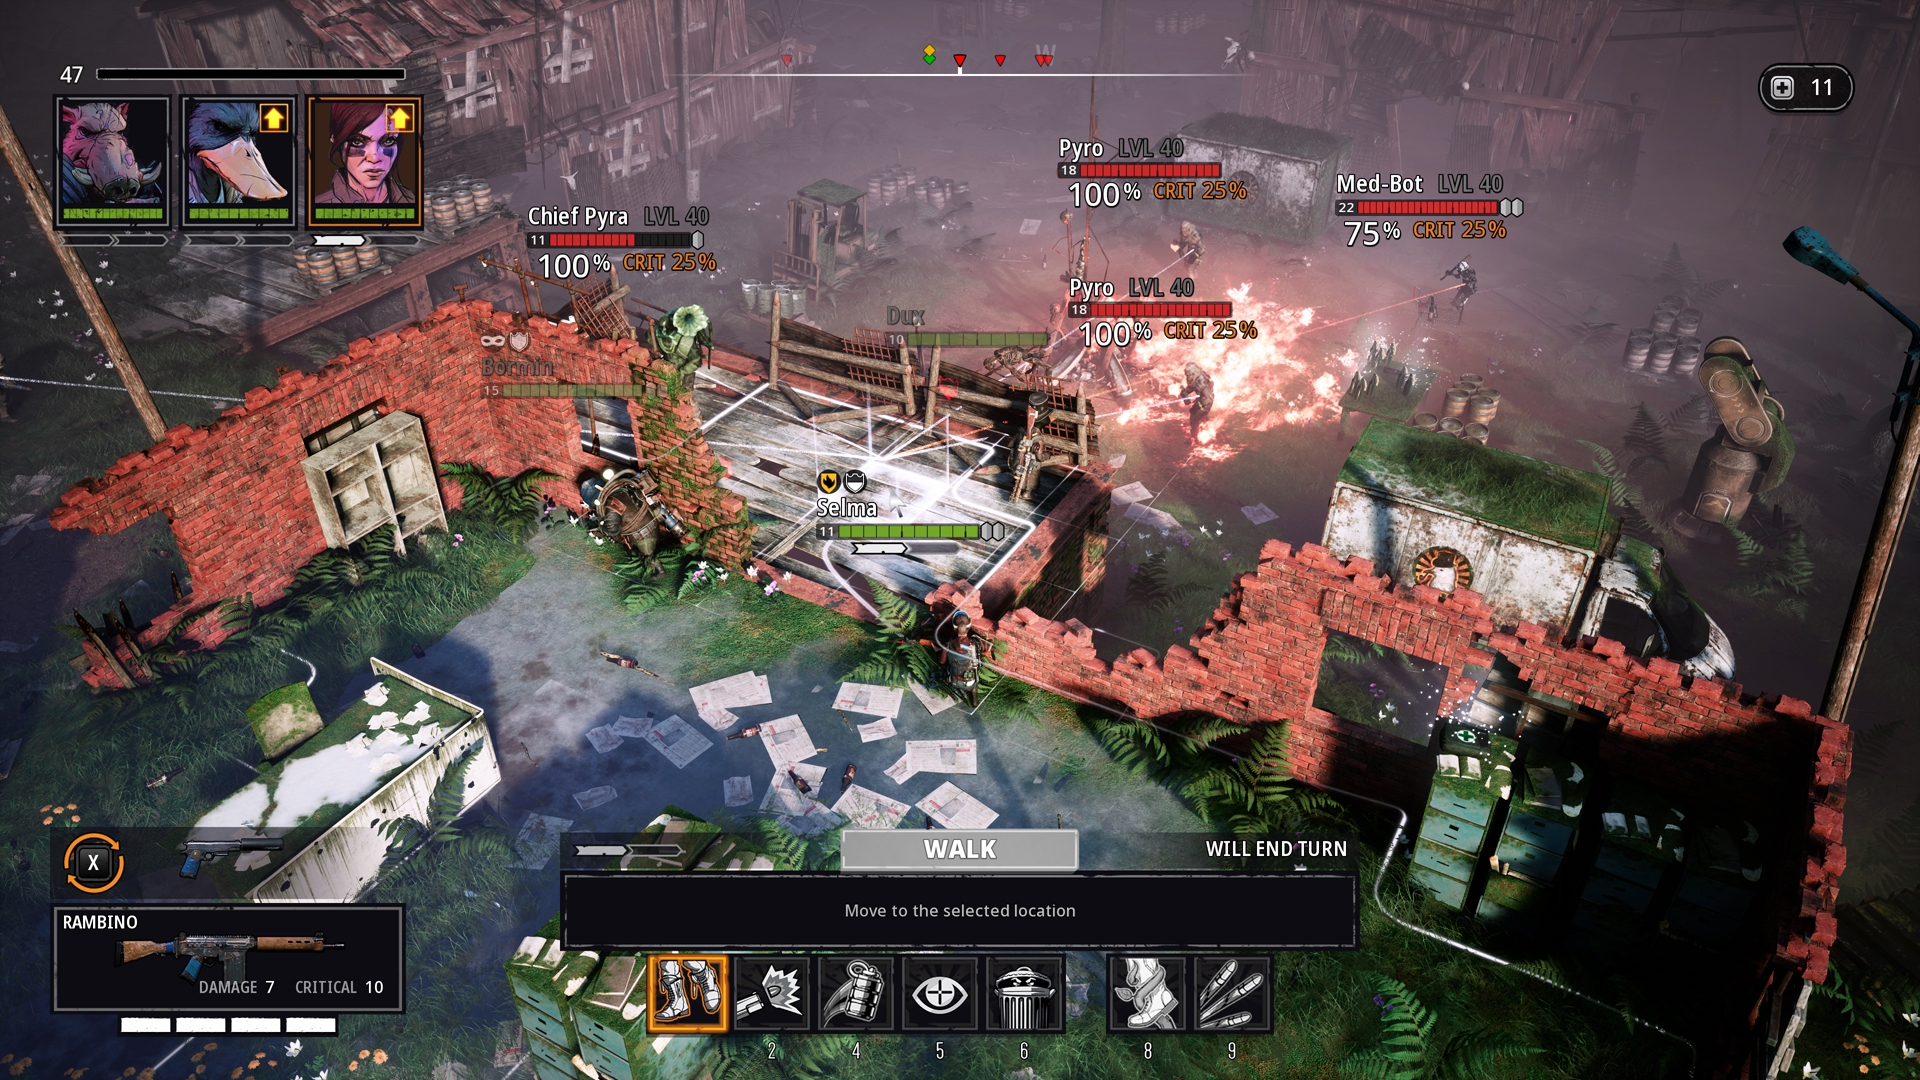 A screenshot showing a tactical battle scene from Mutant Year Zero.